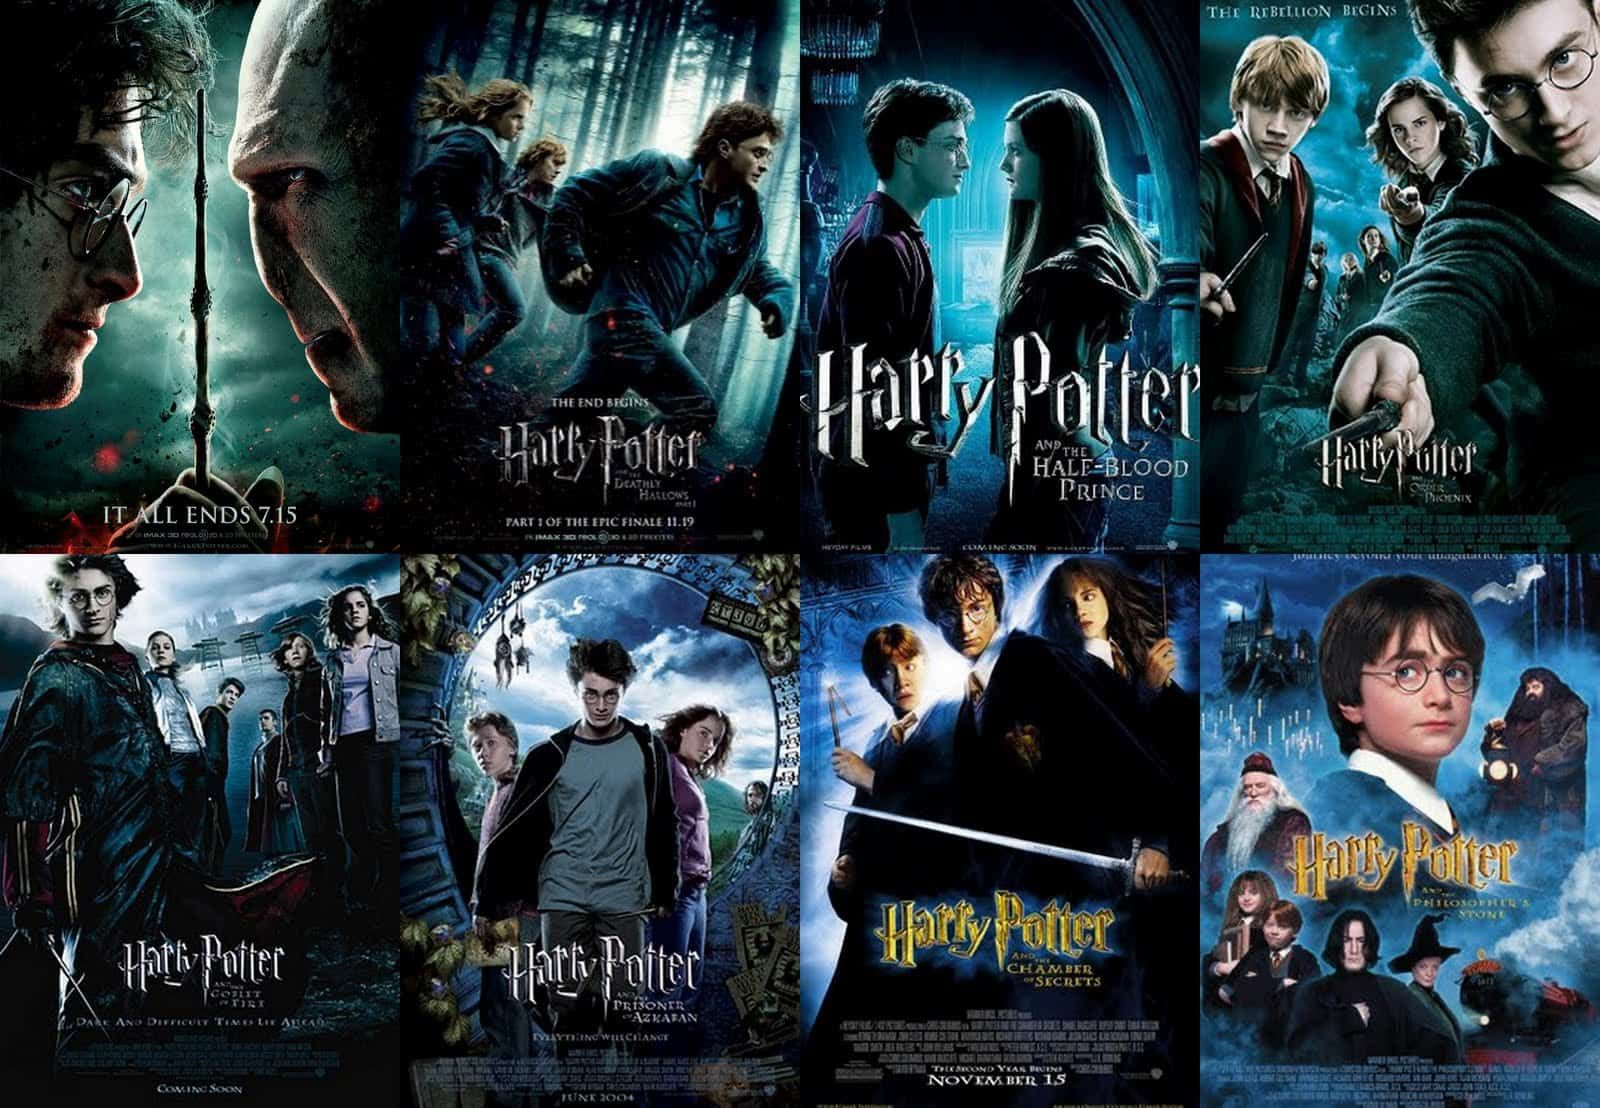 List Of Harry Potter Movies In Order Watch Them All Harry Potter Movie Posters Harry Potter Movies Watch Harry Potter Movies